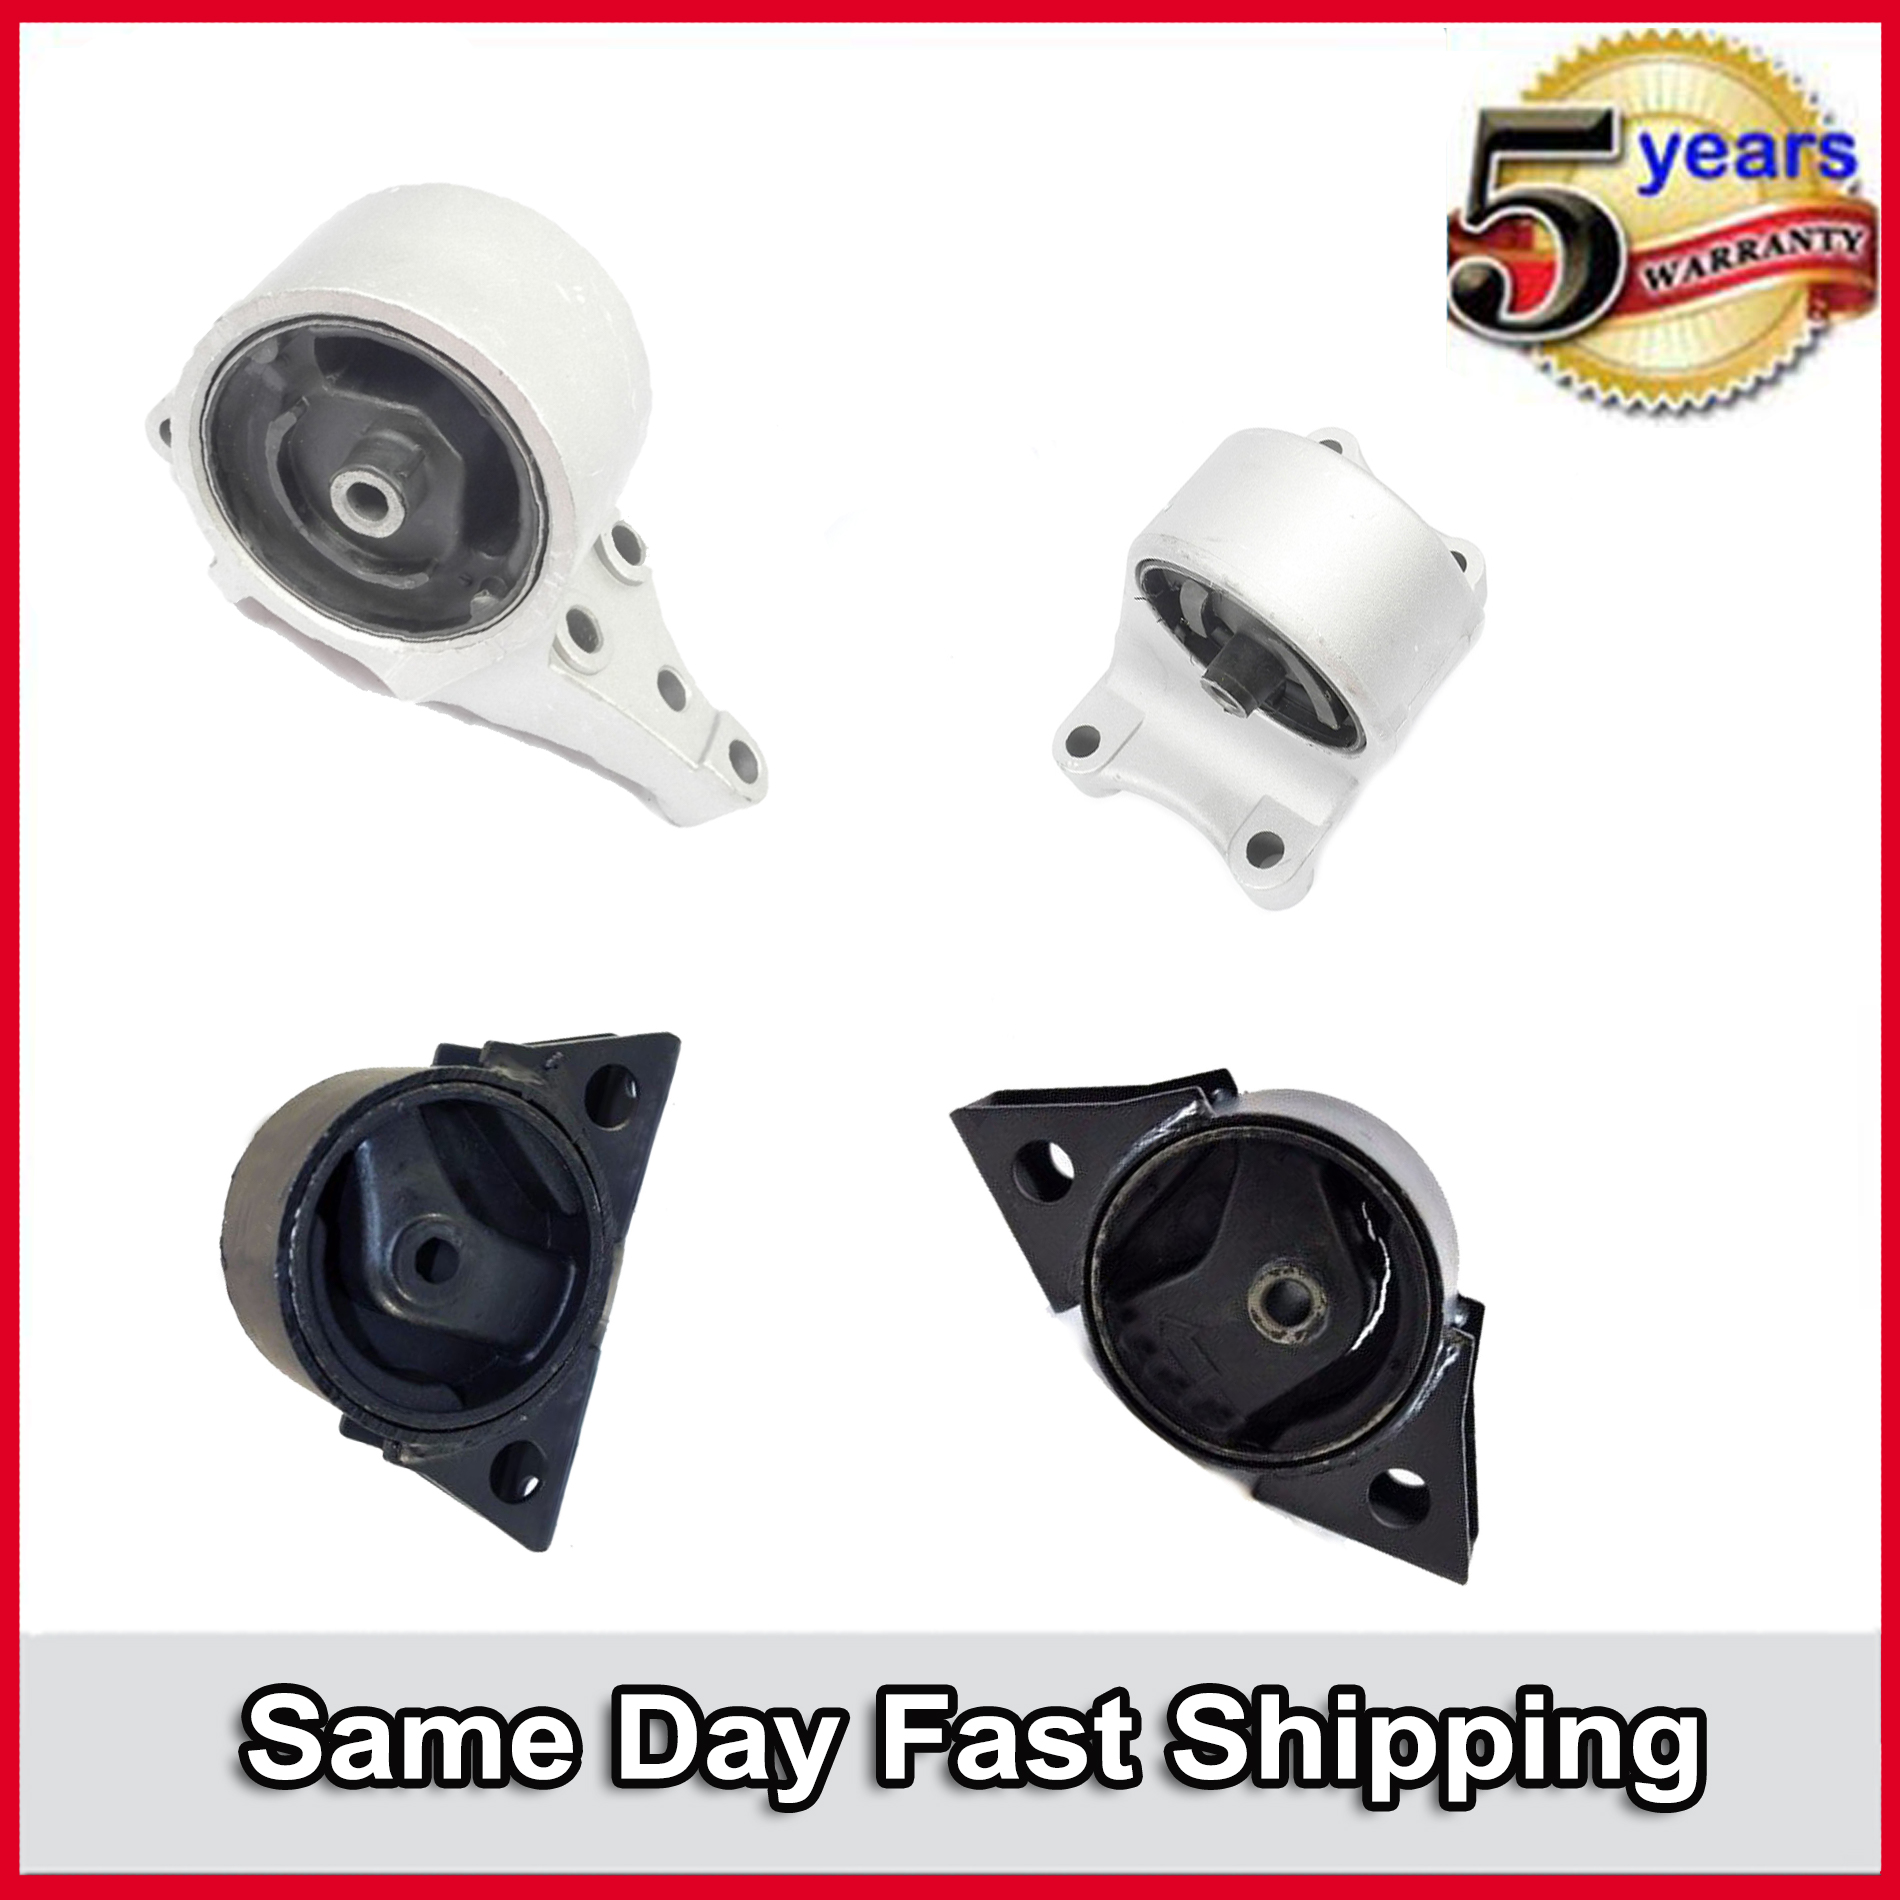 New Trans Engine Motor Mount 6343 For 1993-2001 Nissan Altima 2.4L New